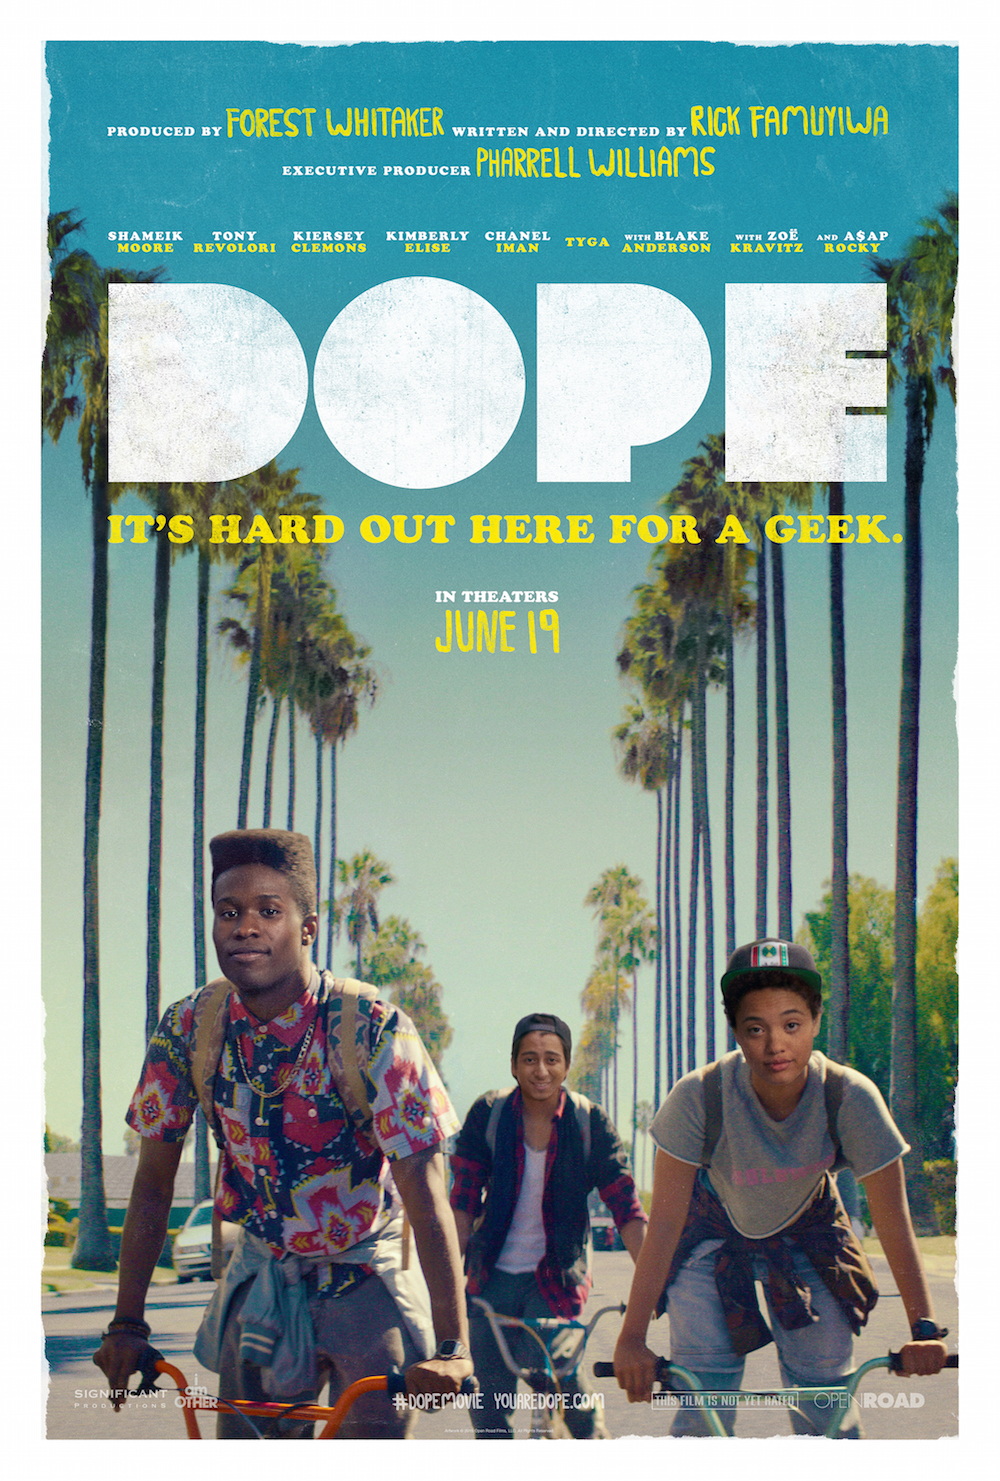 Pharrell Williams Reveals DOPE Movie Official Poster on Instagram